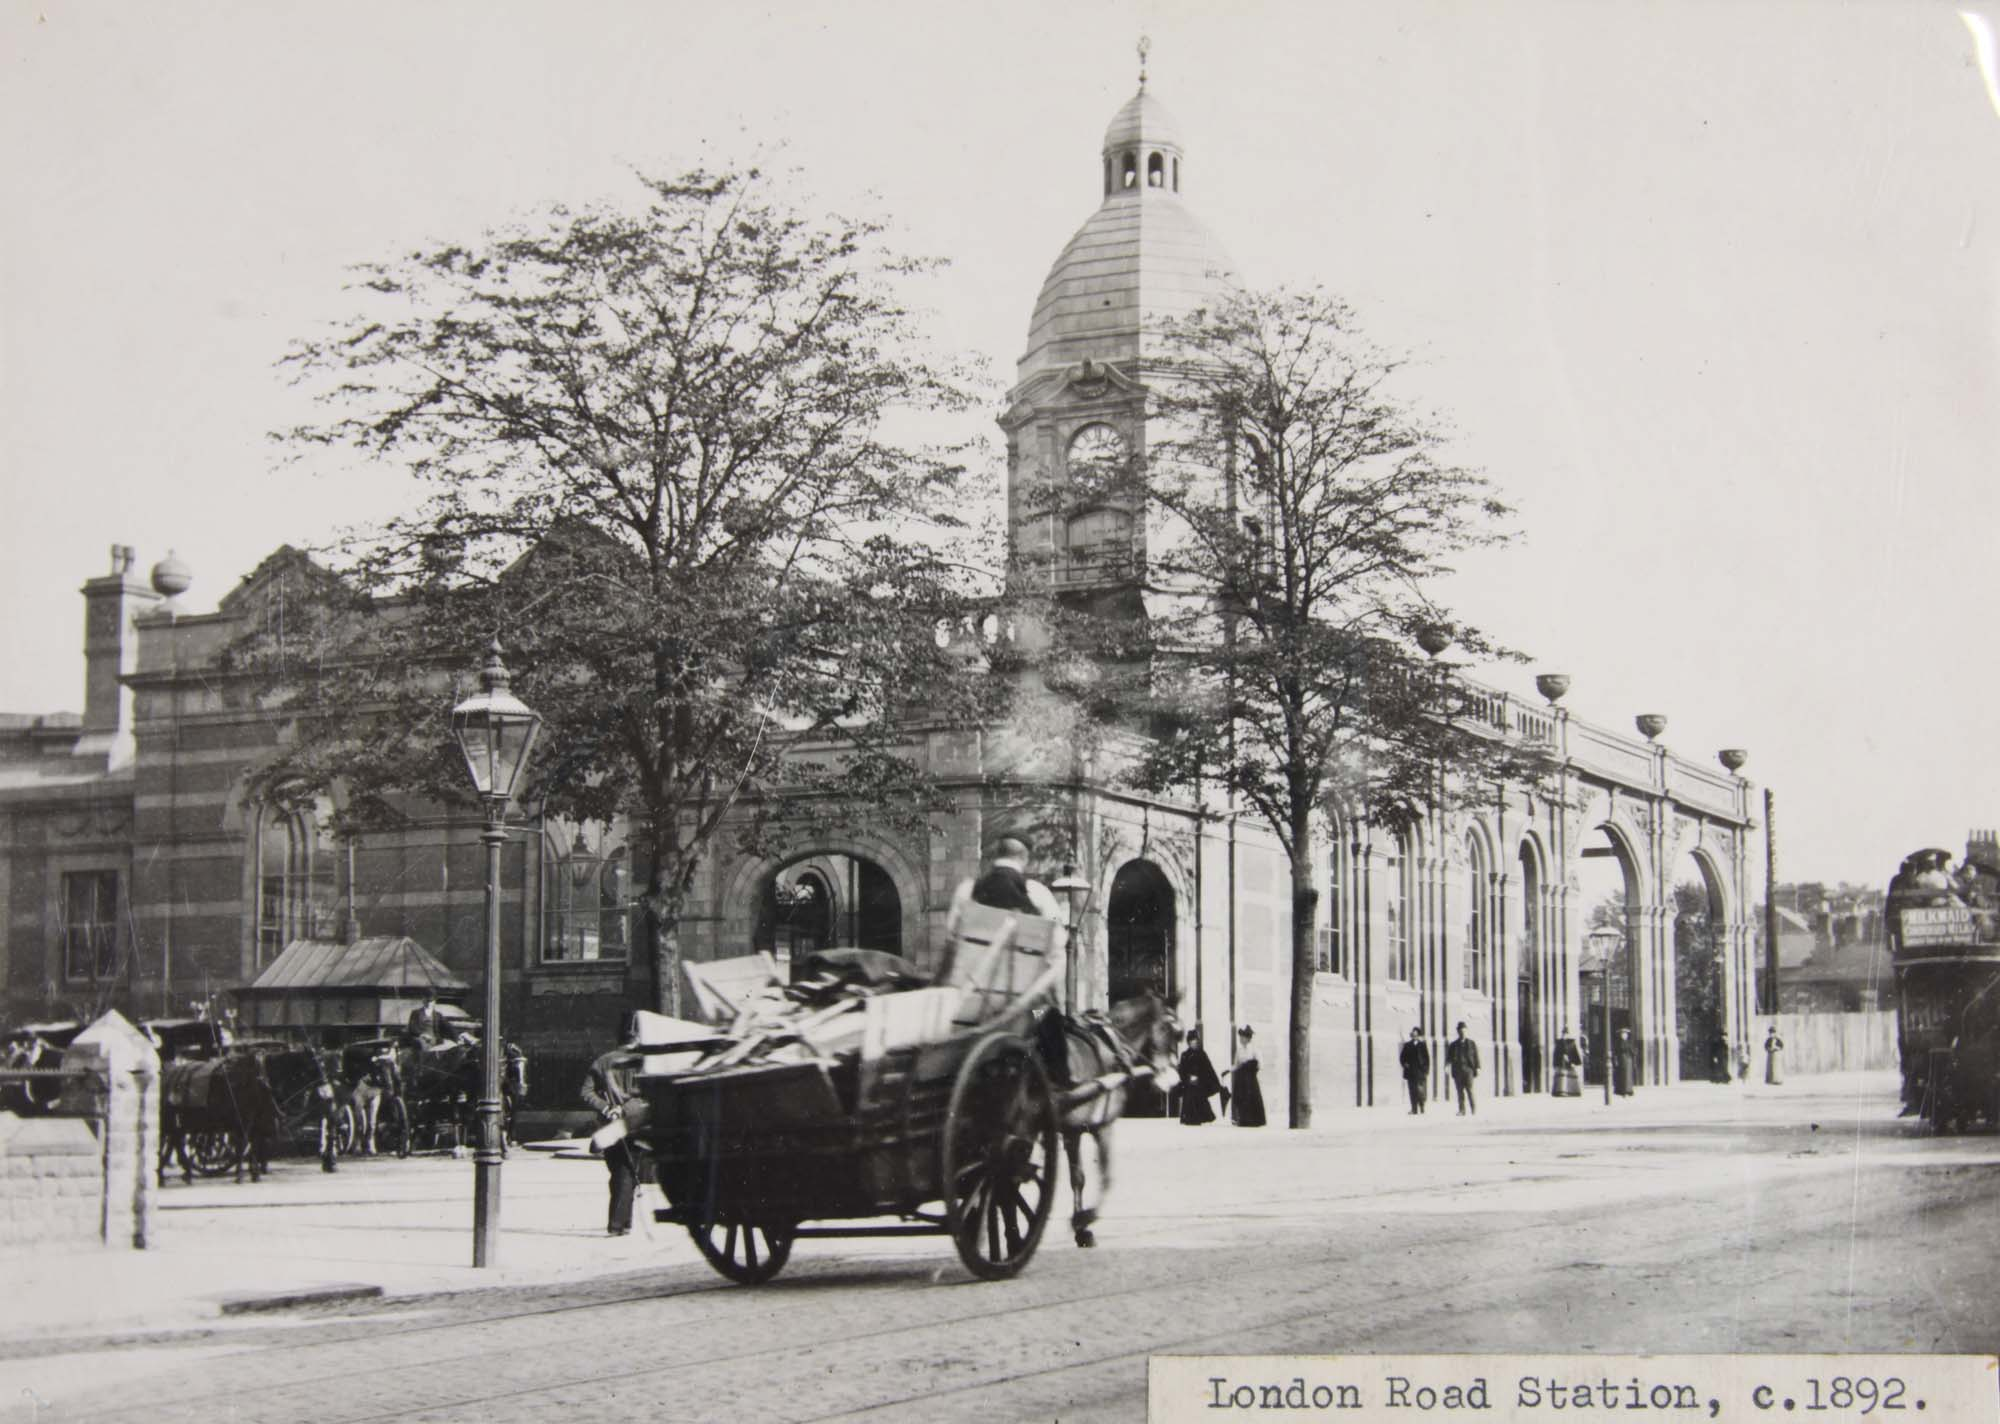 London Road Station, 1892 - Leicestershire Record Office